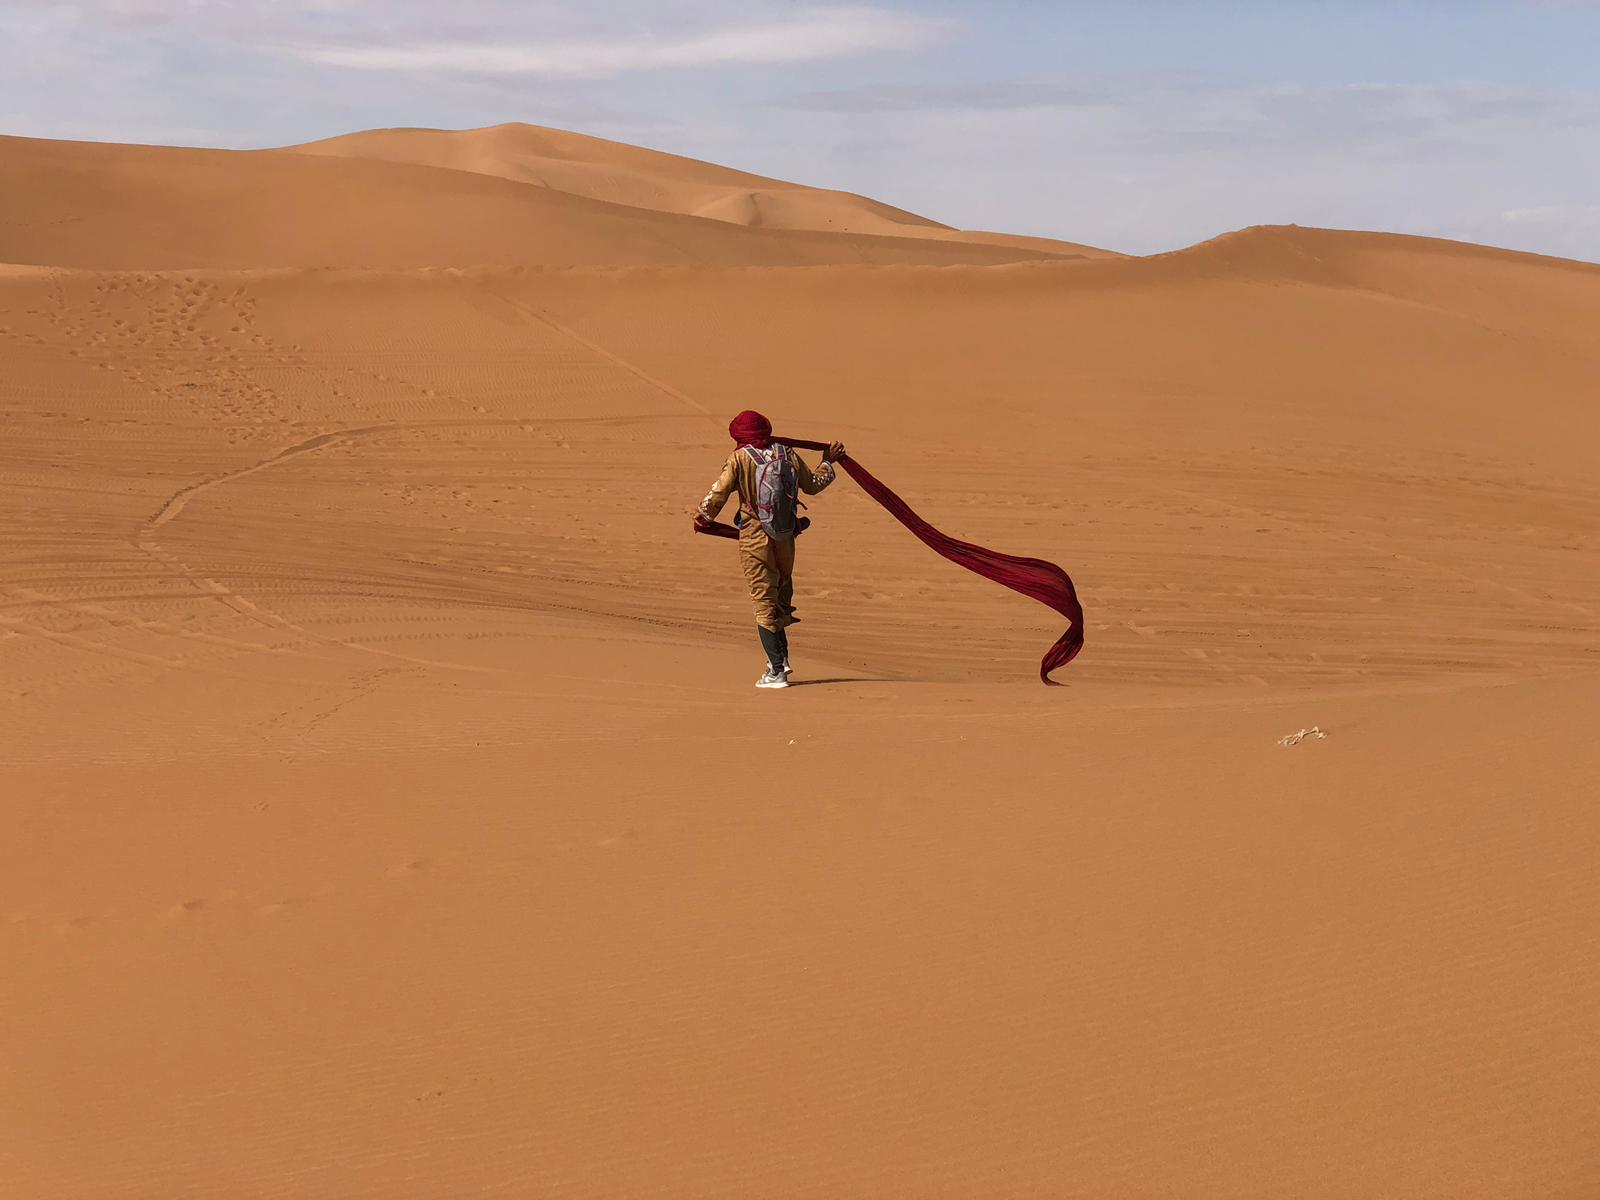 A man walking in the Erg Chebbi sand dunes with a scarf flying behind him.